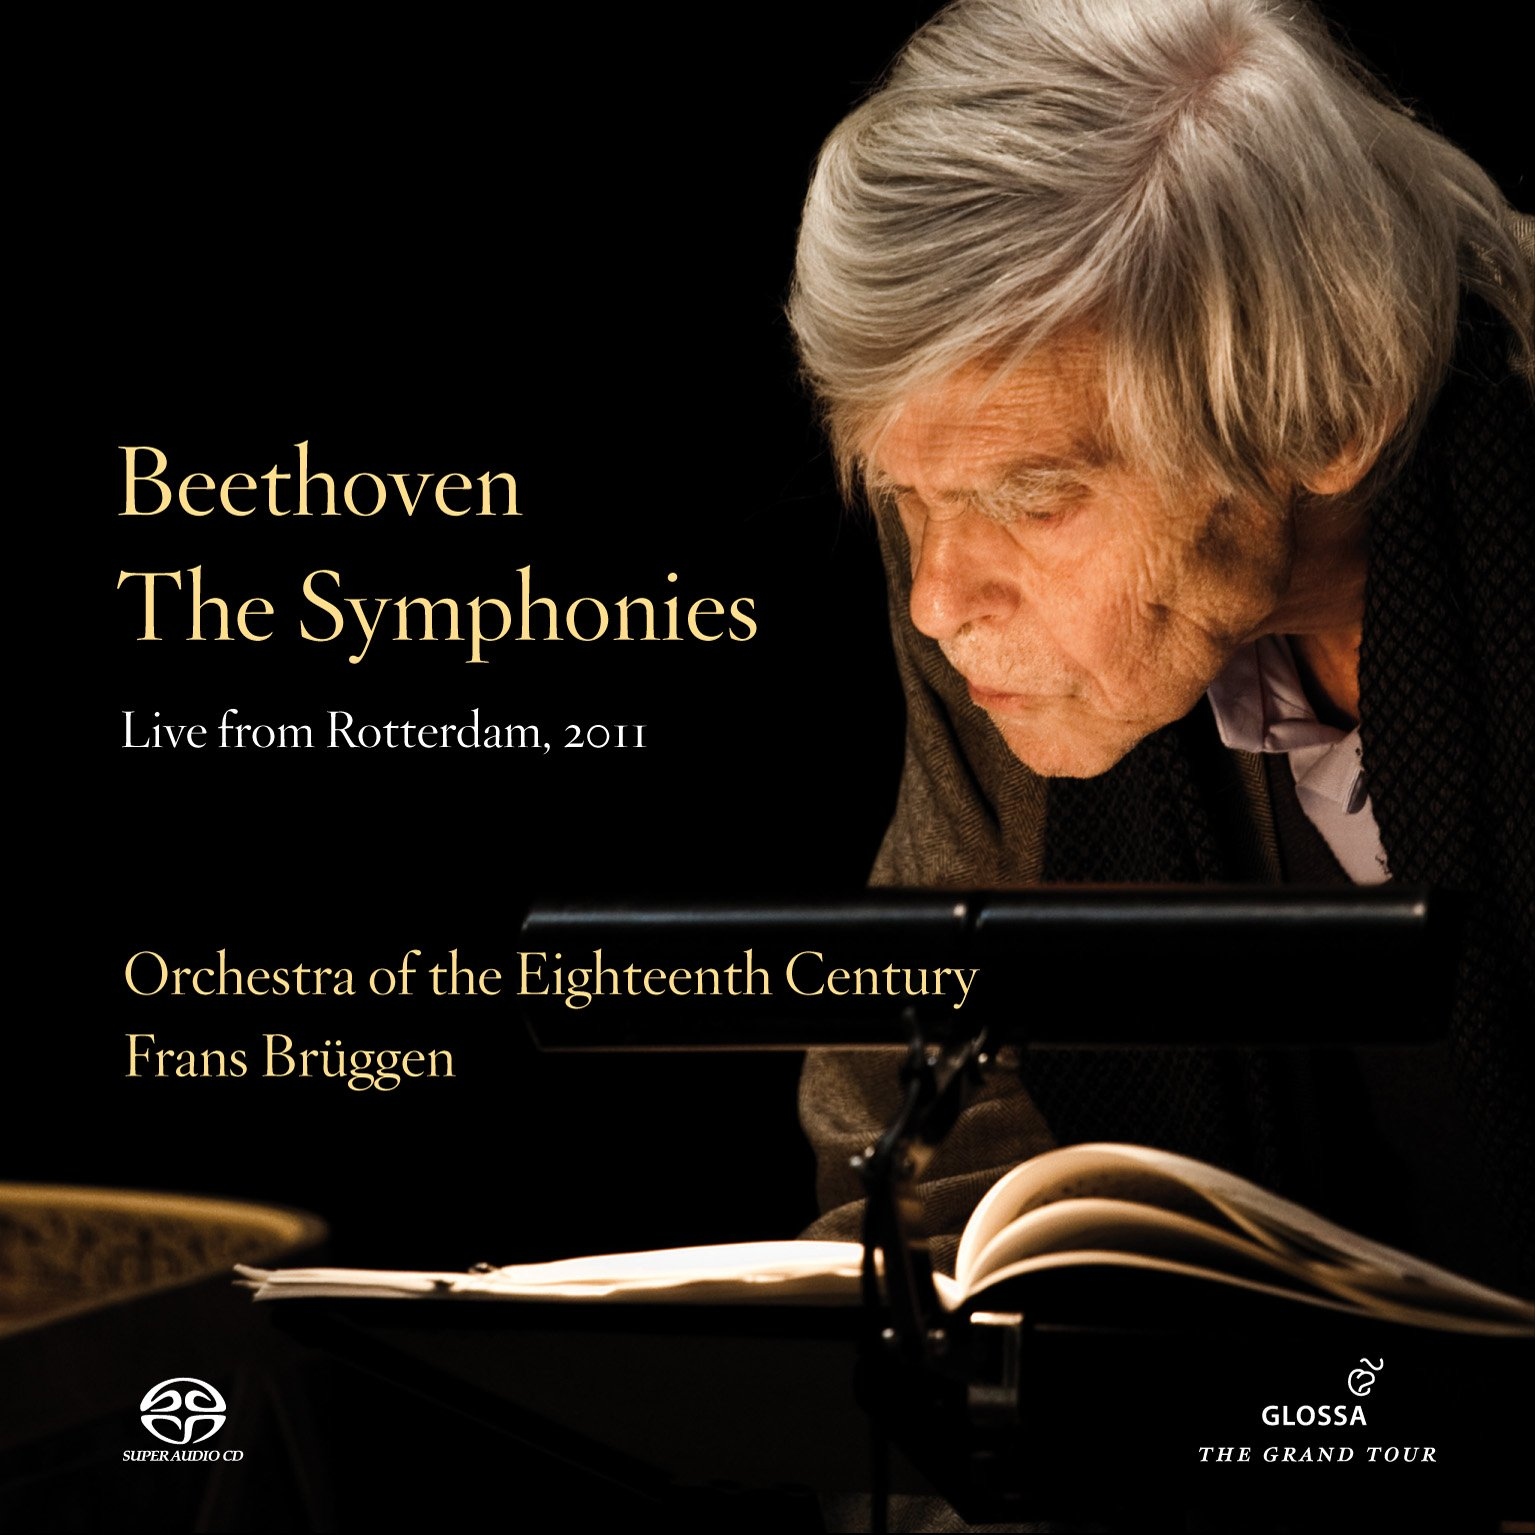 Beethoven: The Symphonies (Live From Rotterdam, 2011) by Glossa